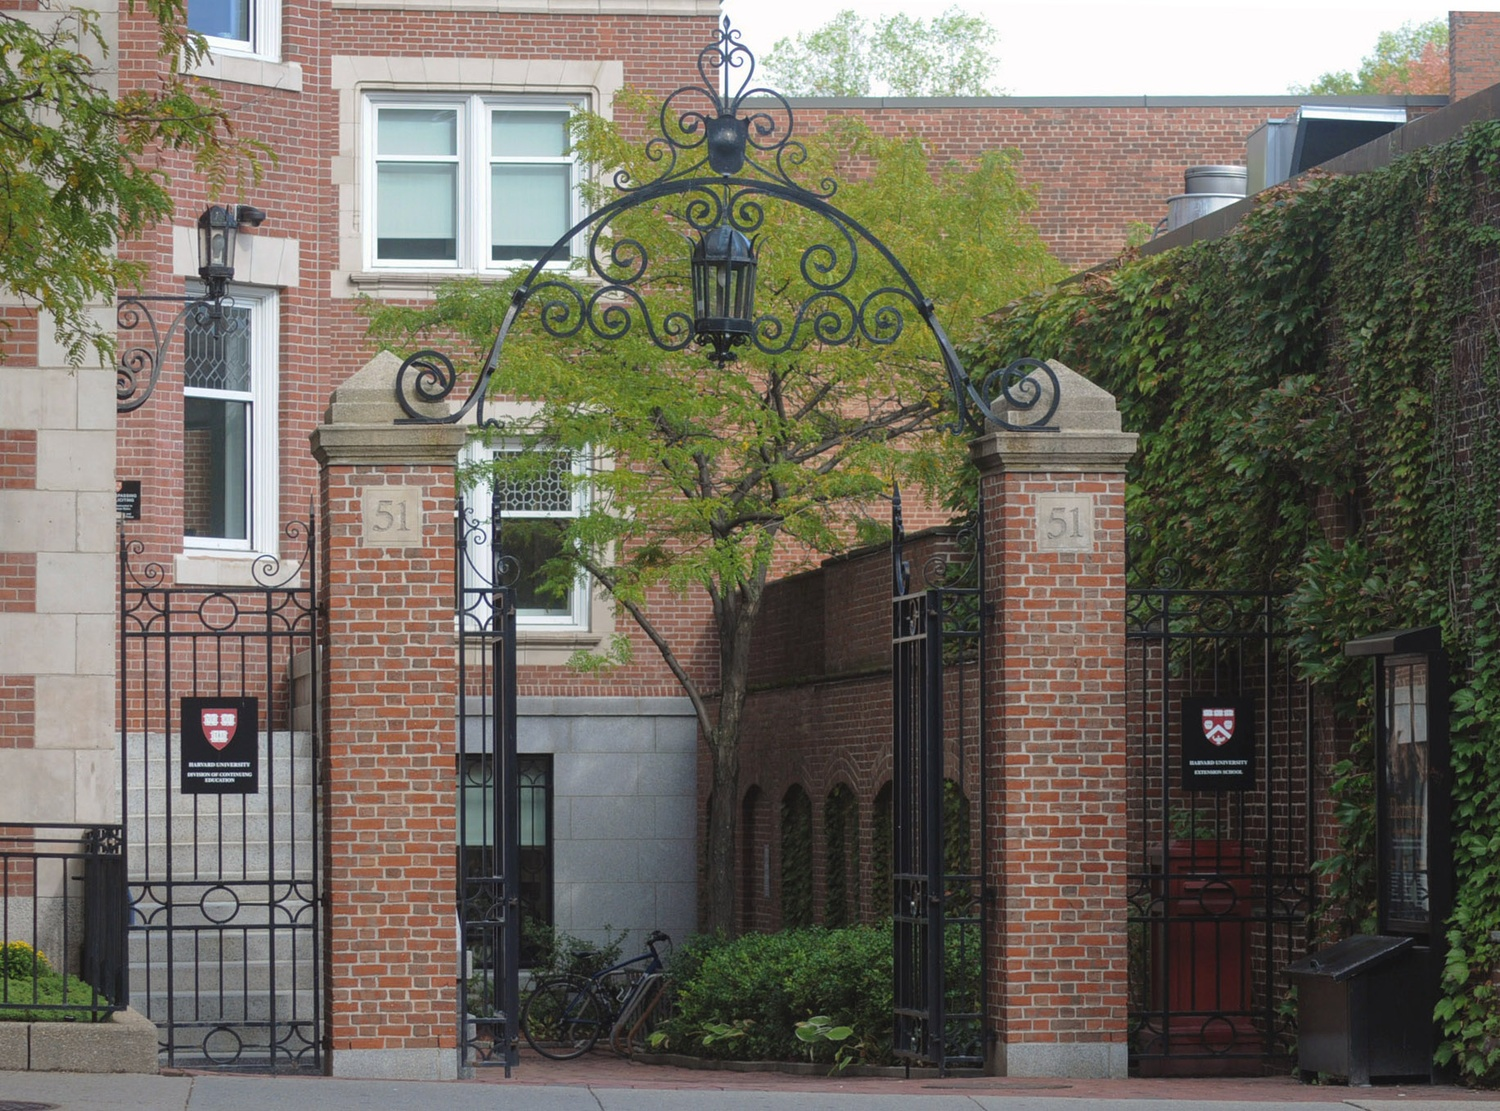 The gate entrance to the Harvard Extension School's administrative offices, pictured in 2015.